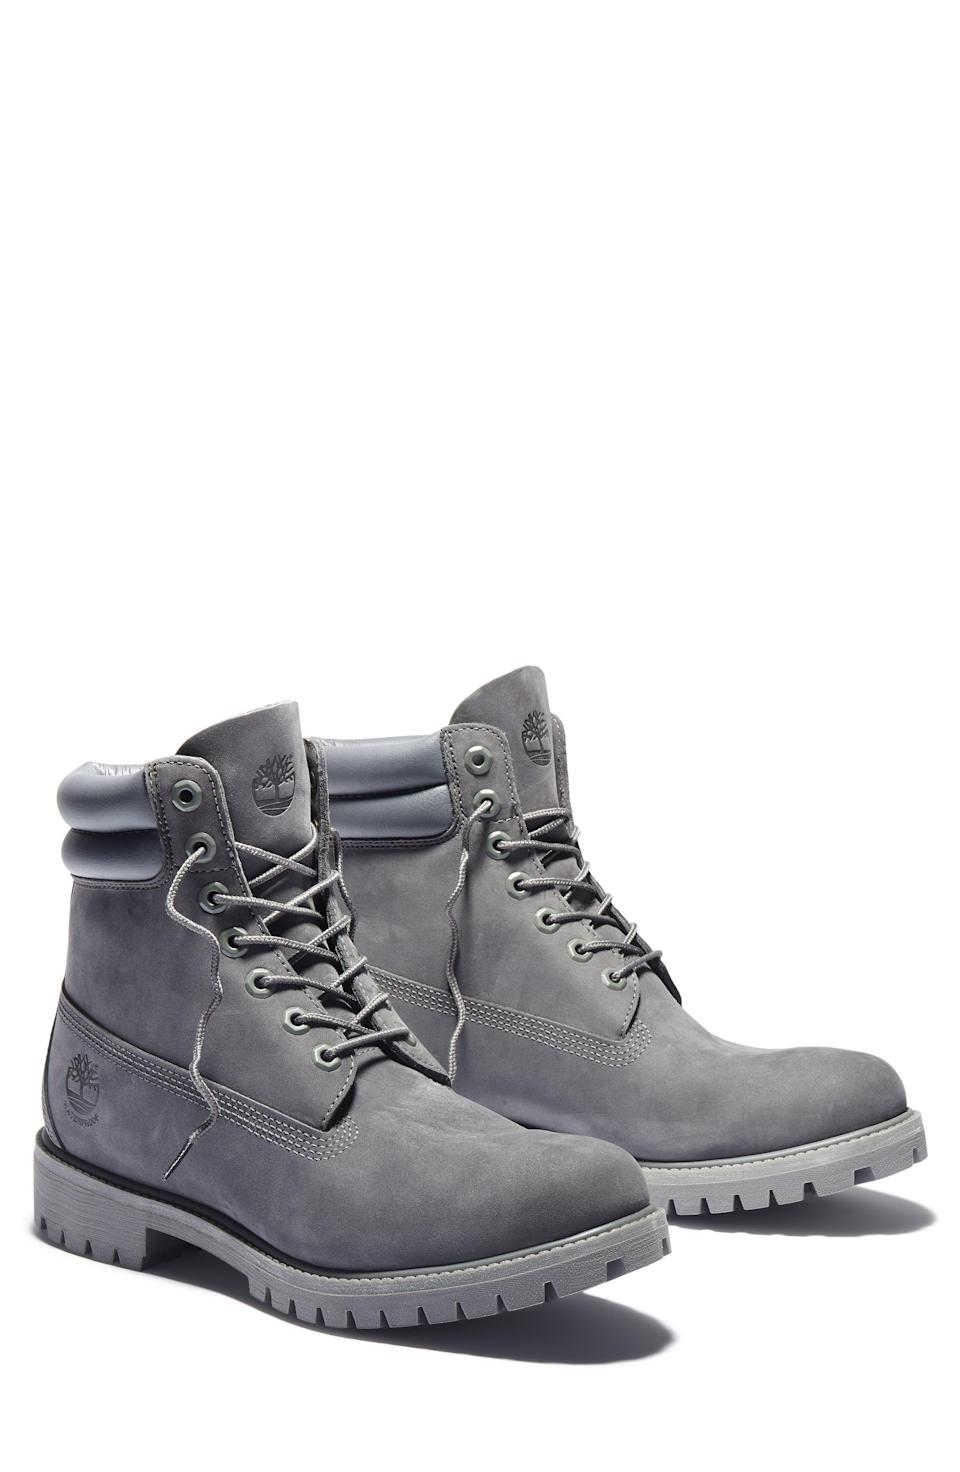 """<p><strong>TIMBERLAND</strong></p><p>nordstrom.com</p><p><a href=""""https://go.redirectingat.com?id=74968X1596630&url=https%3A%2F%2Fwww.nordstrom.com%2Fs%2Ftimberland-6-inch-waterproof-boot-men%2F5914179&sref=https%3A%2F%2Fwww.esquire.com%2Fstyle%2Fmens-fashion%2Fg37002225%2Fnordstrom-anniversary-sale-mens-fashion-deals-2021%2F"""" rel=""""nofollow noopener"""" target=""""_blank"""" data-ylk=""""slk:Shop Now"""" class=""""link rapid-noclick-resp"""">Shop Now</a></p><p><strong>Sale: $124.90</strong></p><p><strong>After Sale: $188.00</strong></p><p>Come the first cold, rainy day of fall, you'll be damn glad you got these.</p>"""